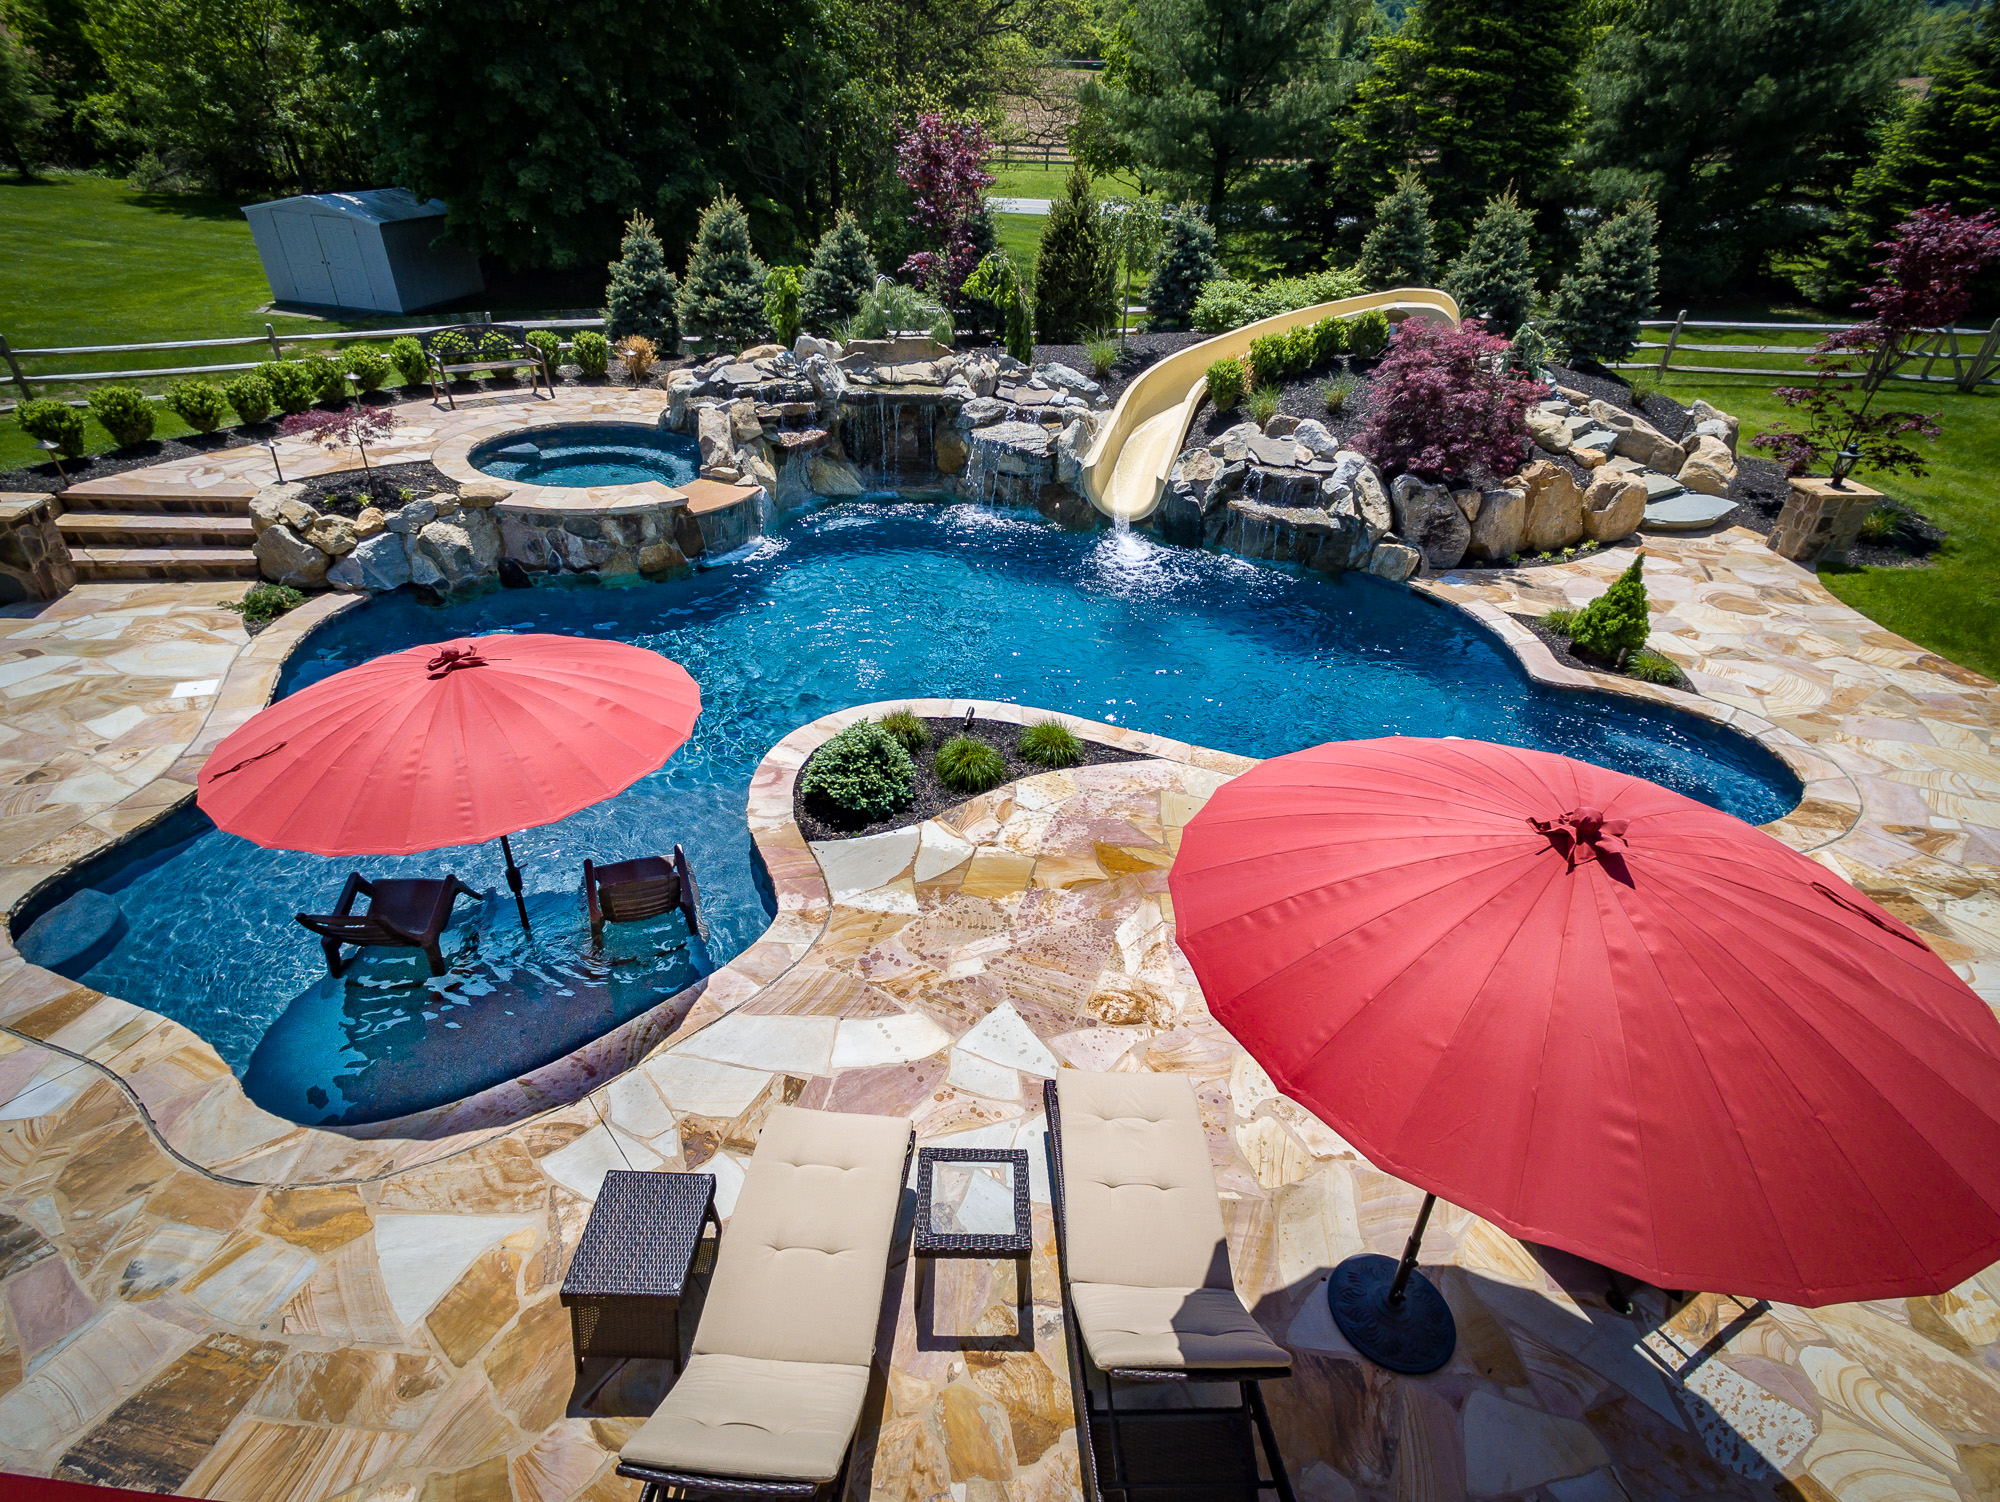 Bloomsbury nj custom inground swimming pool design for Pool design estimator